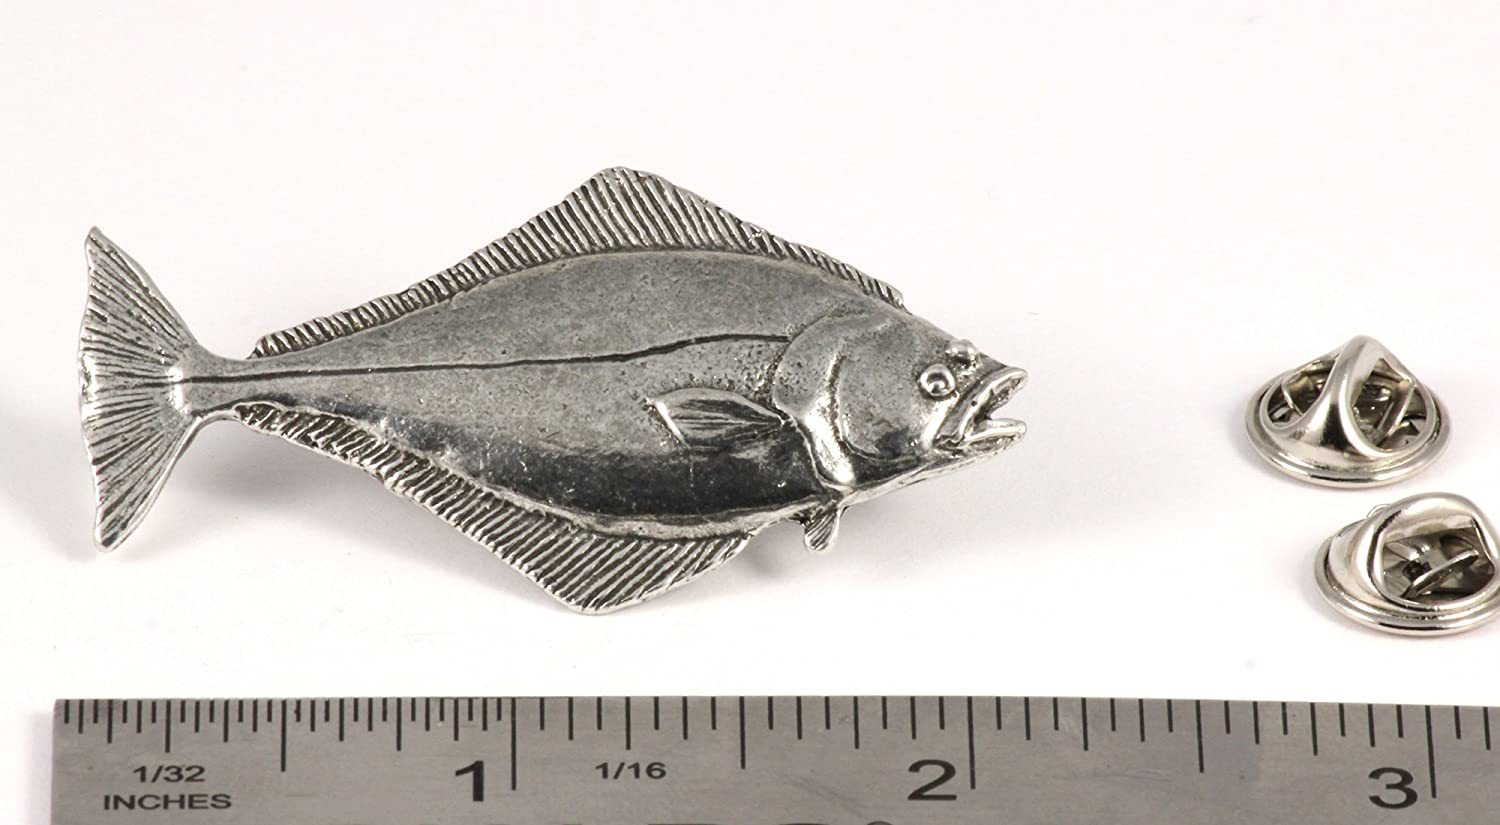 Halibut 350Lb Pewter Lapel Pin Fishing Trophy Jewelry P366